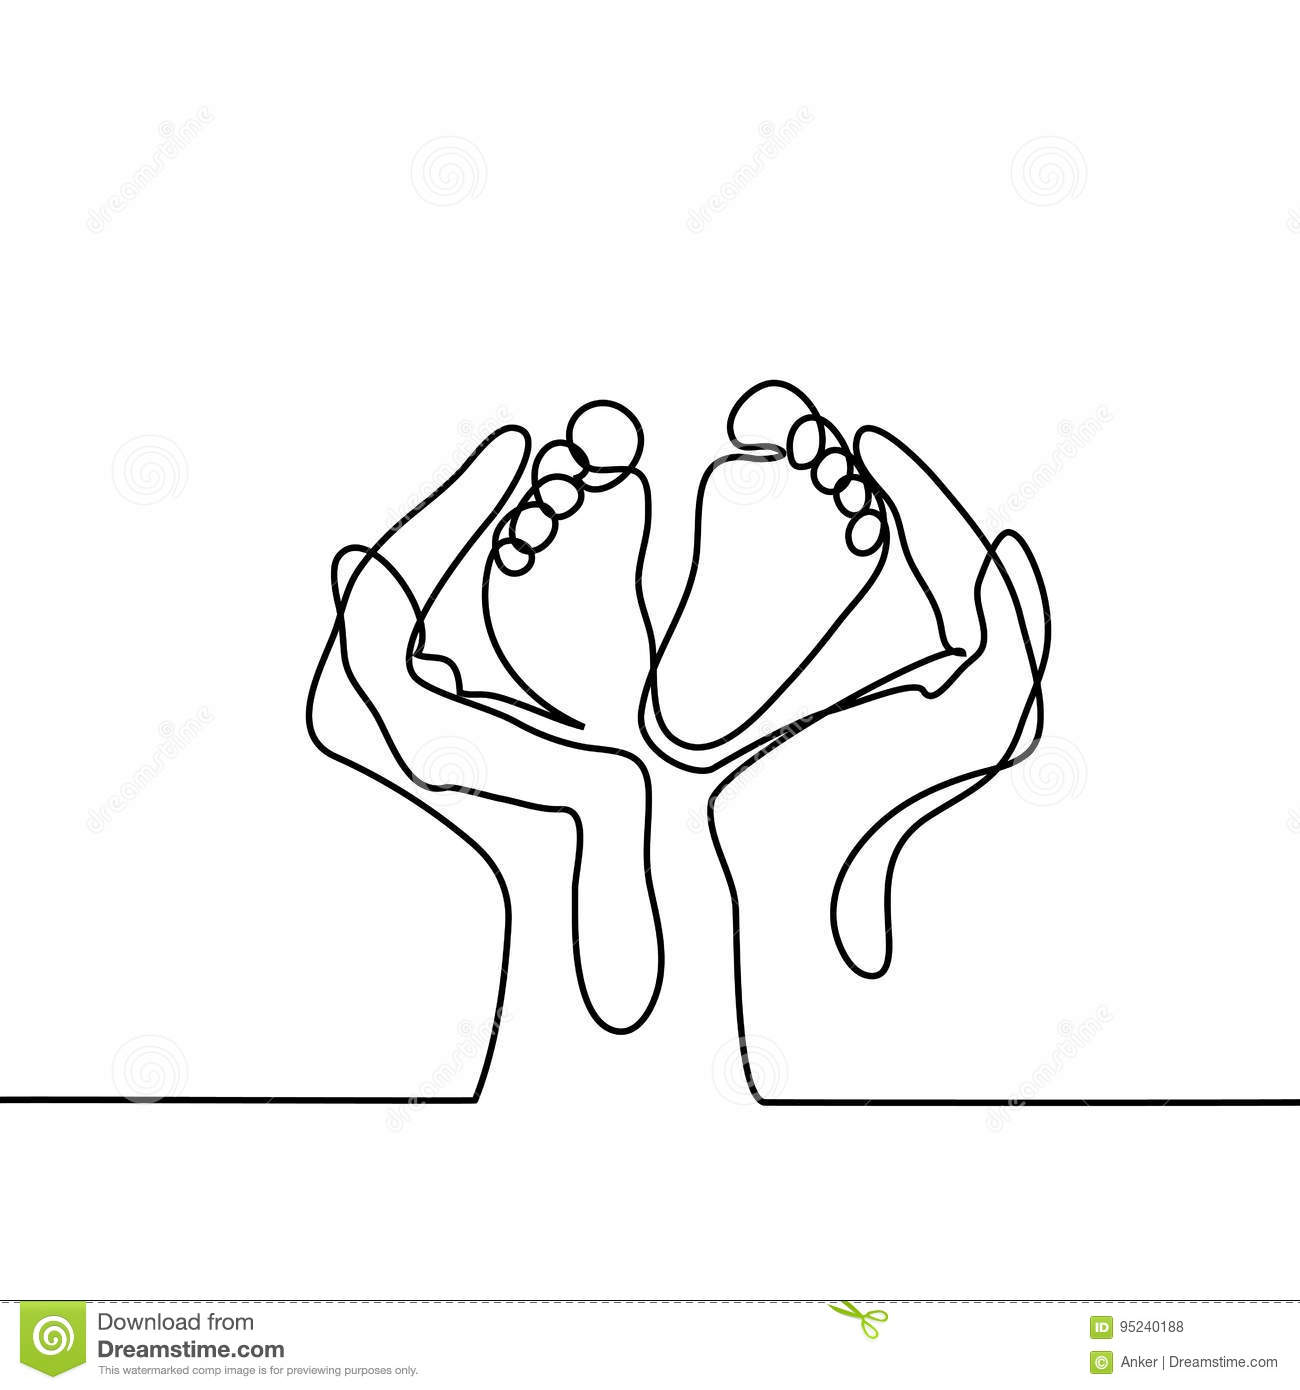 Line Drawing Holding Hands : Hands holding baby foot protection symbol stock vector